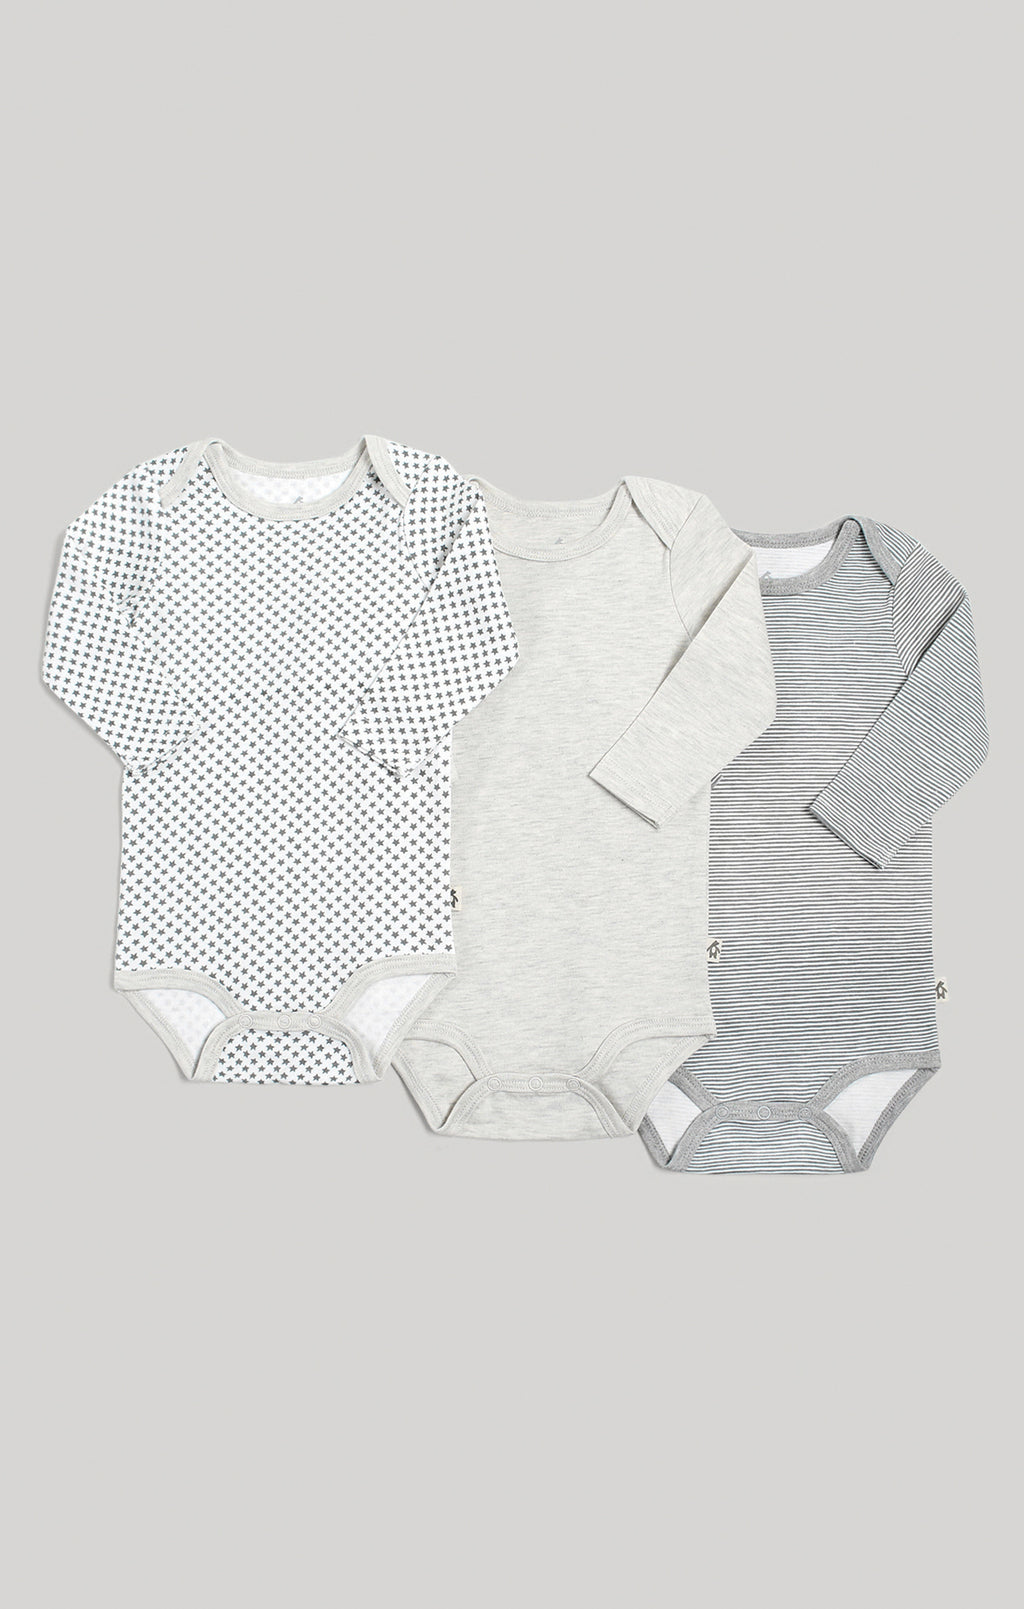 Baby Clothes - 3 Pack Neutral Long Sleeve Baby Bodysuits